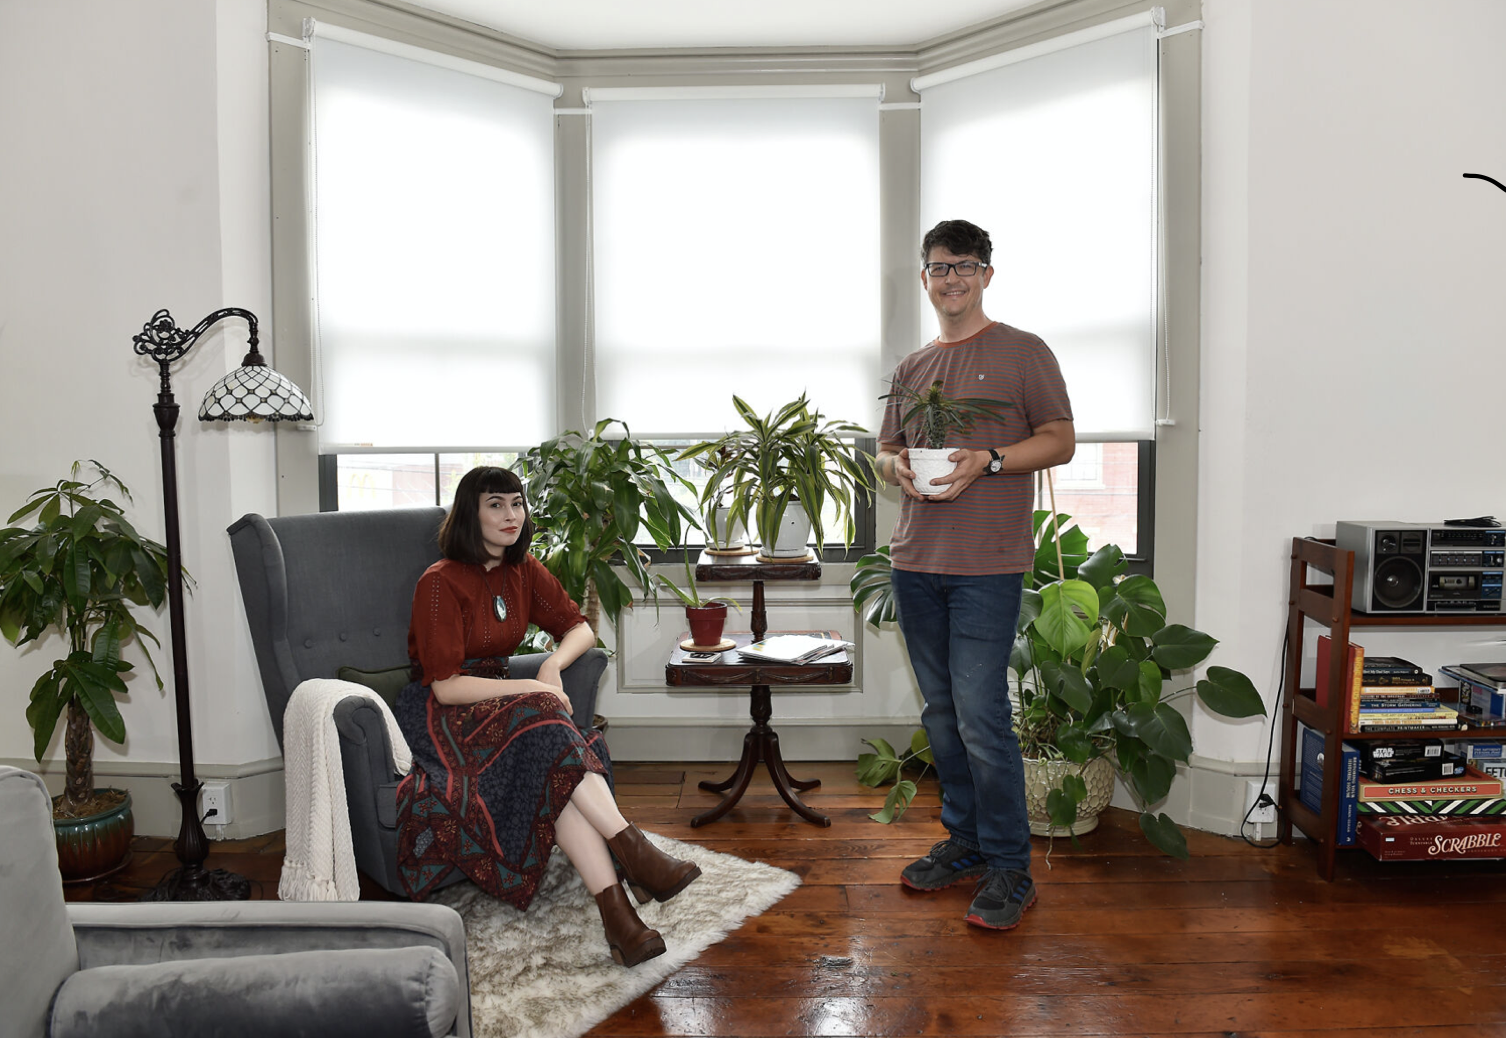 Evan Young and Emily Moccero's plant-filled Airbnb, which is decorated by over 80 different house plants. Source: LancasterOnline